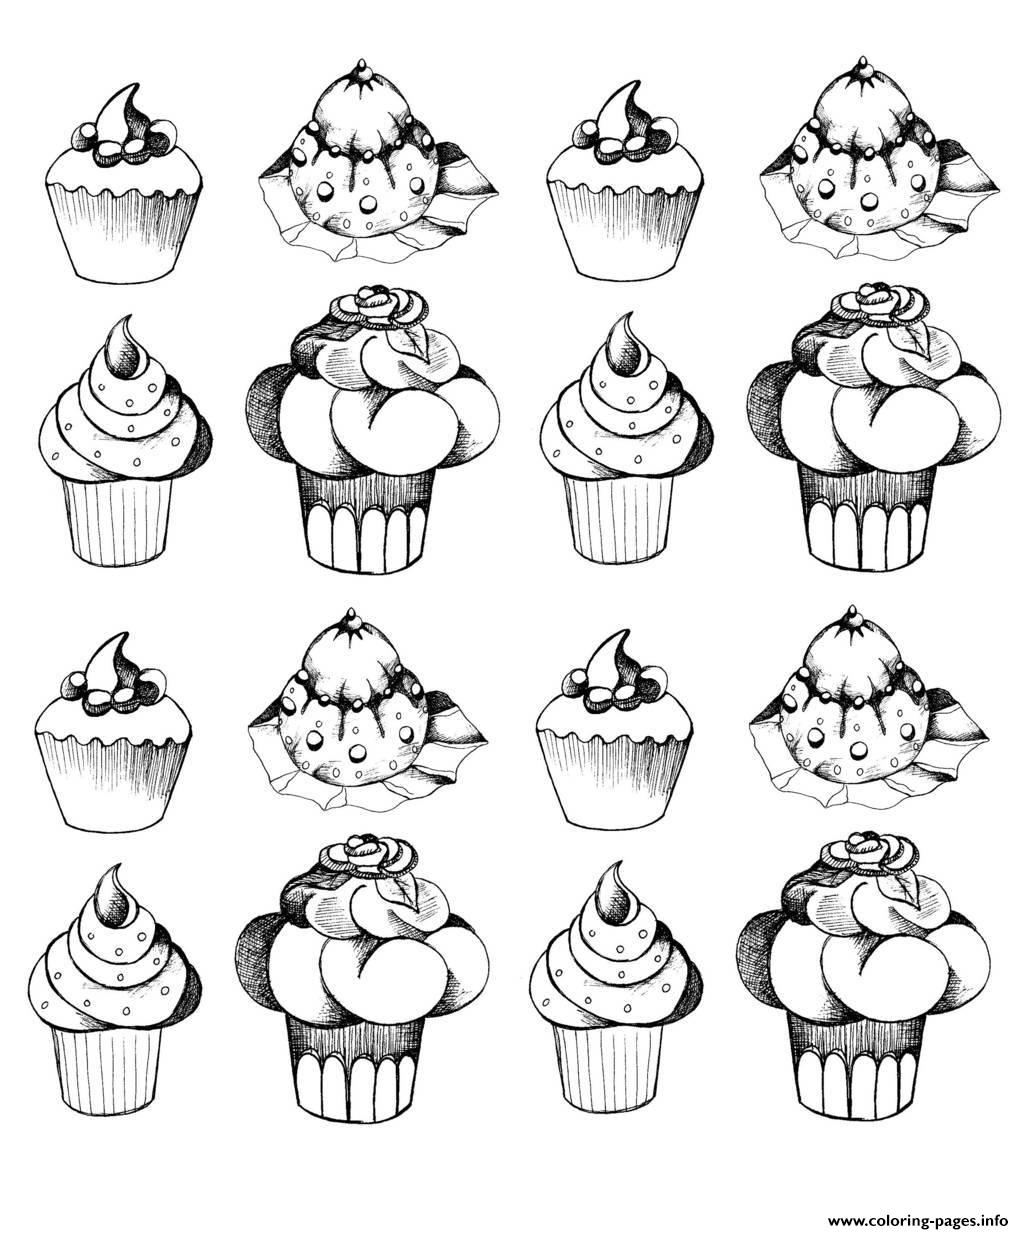 Adult Cupcakes Oldstyle Coloring Pages Printable